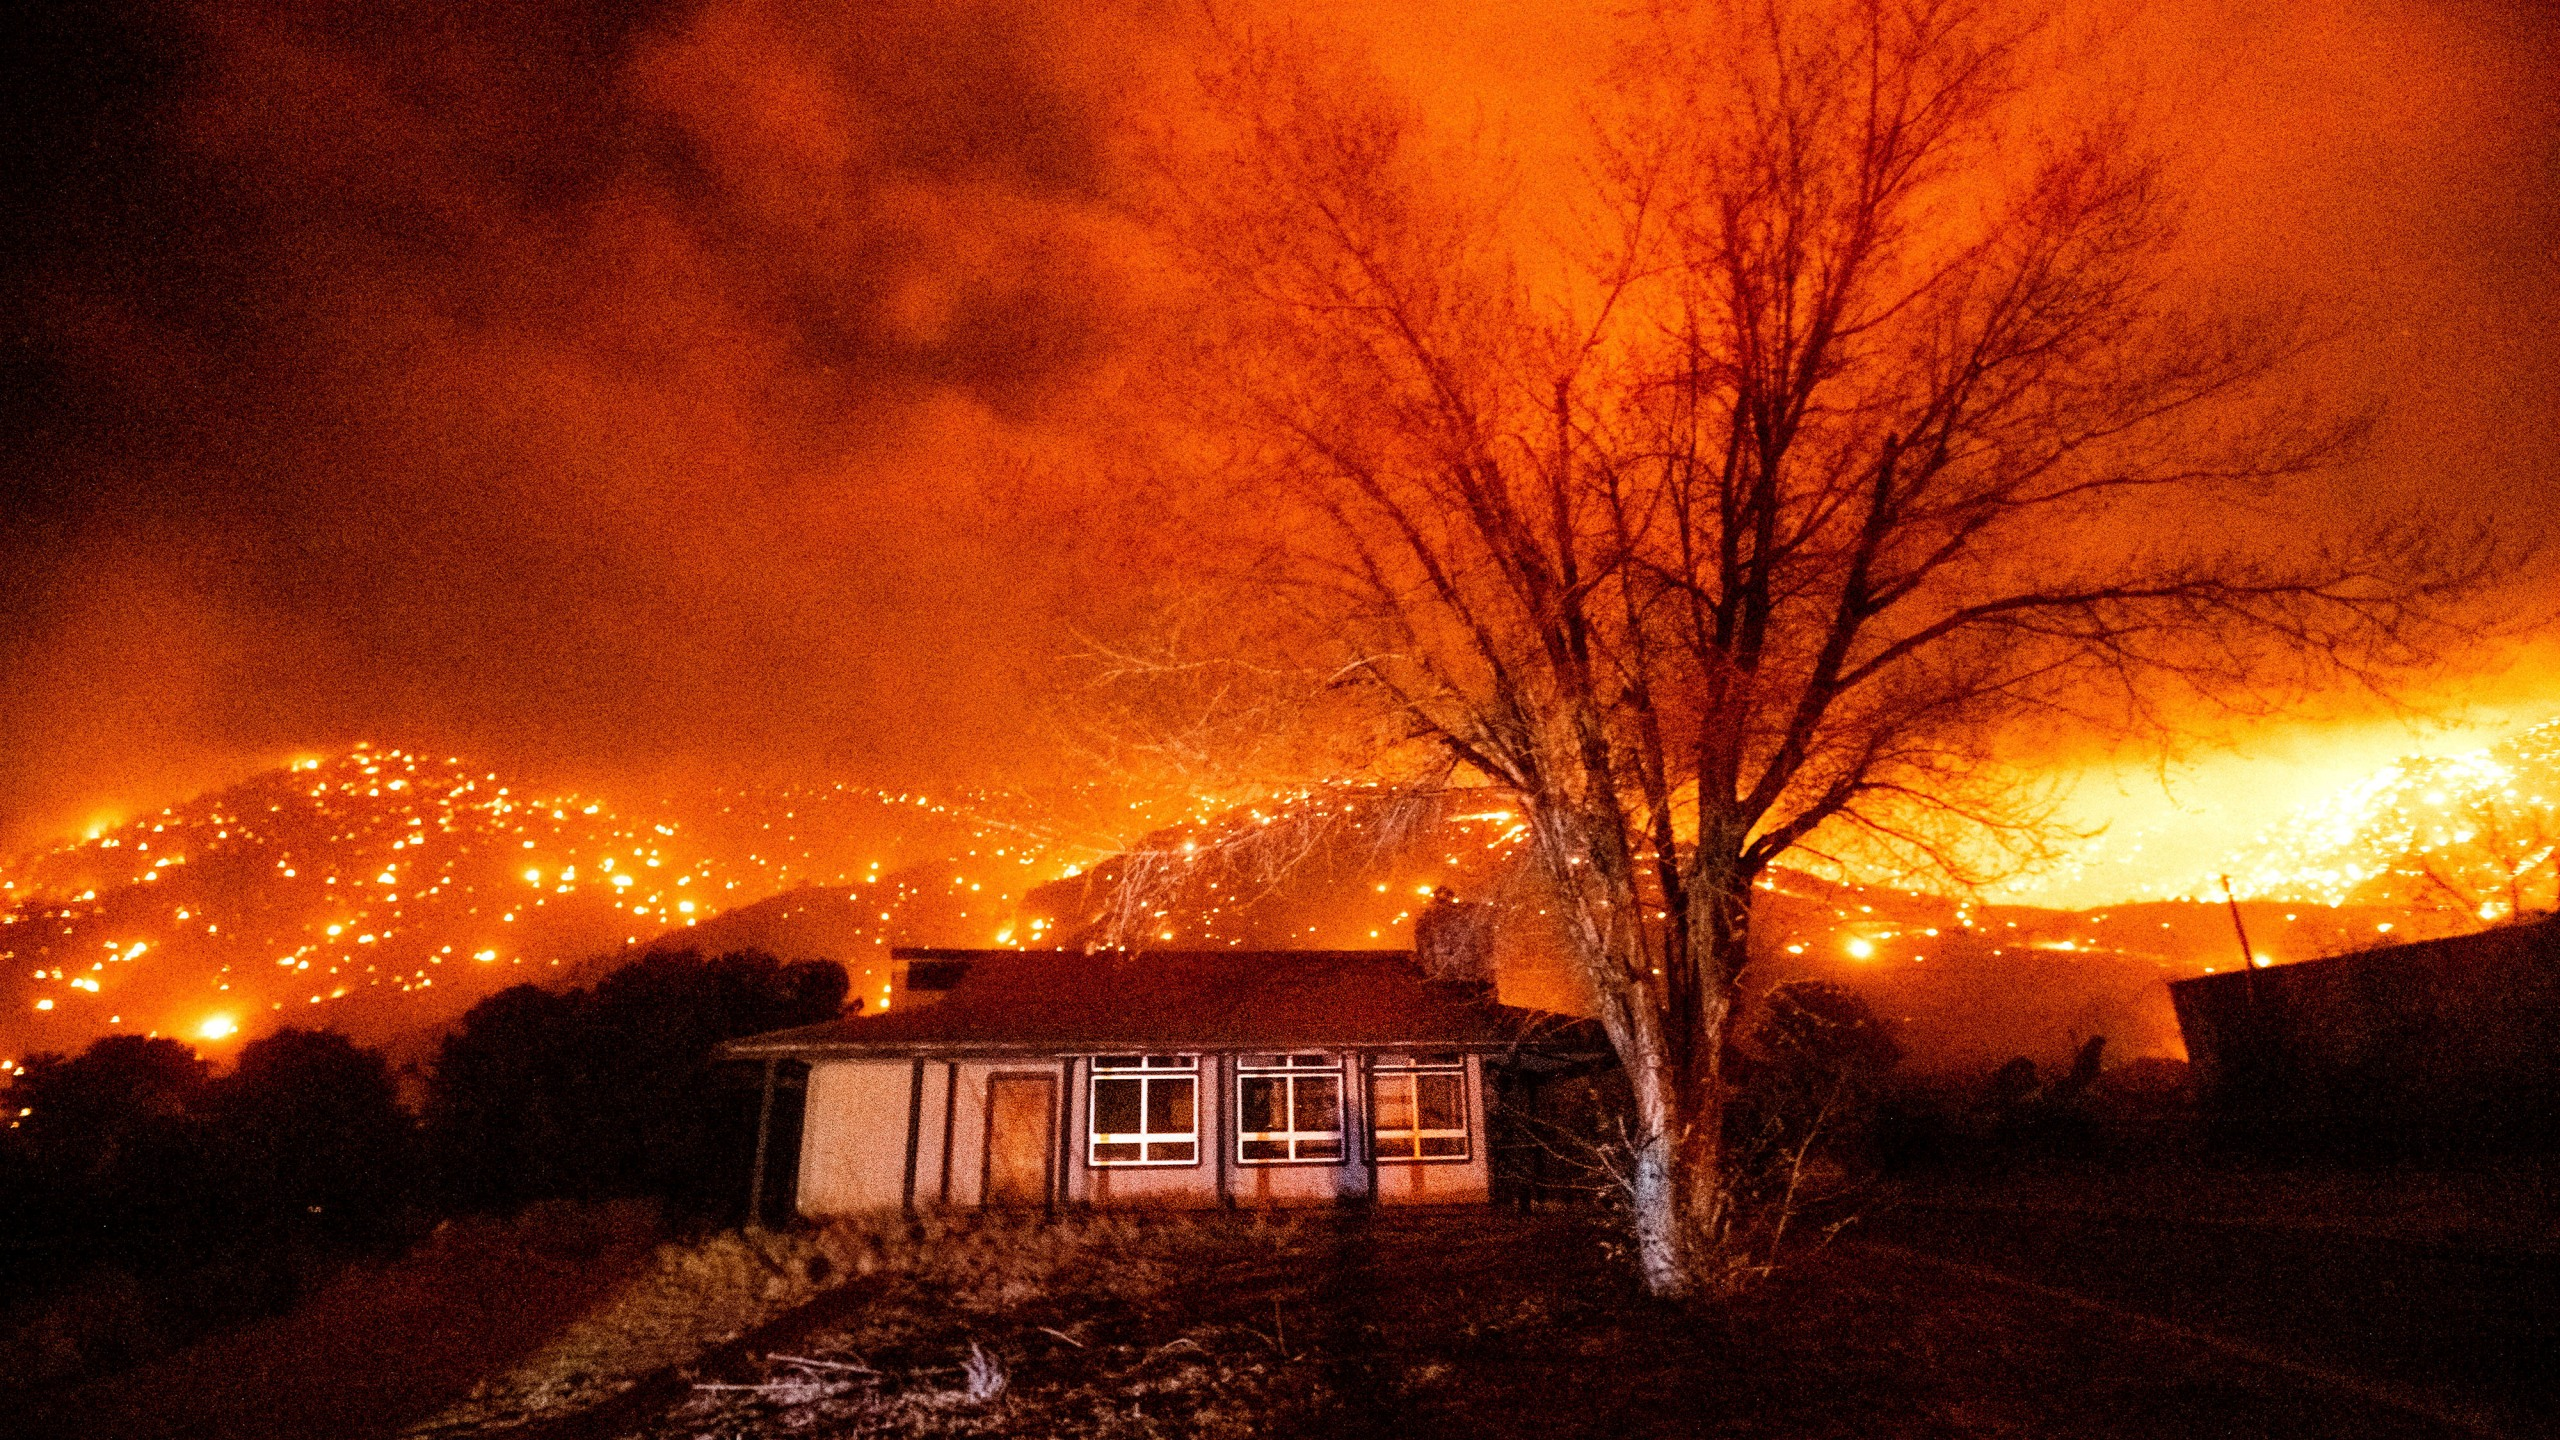 Embers burn along hillsides as the Mountain View Fire tears through the Walker community in Mono County, Calif., on Tuesday, Nov. 17, 2020. (AP Photo/Noah Berger)